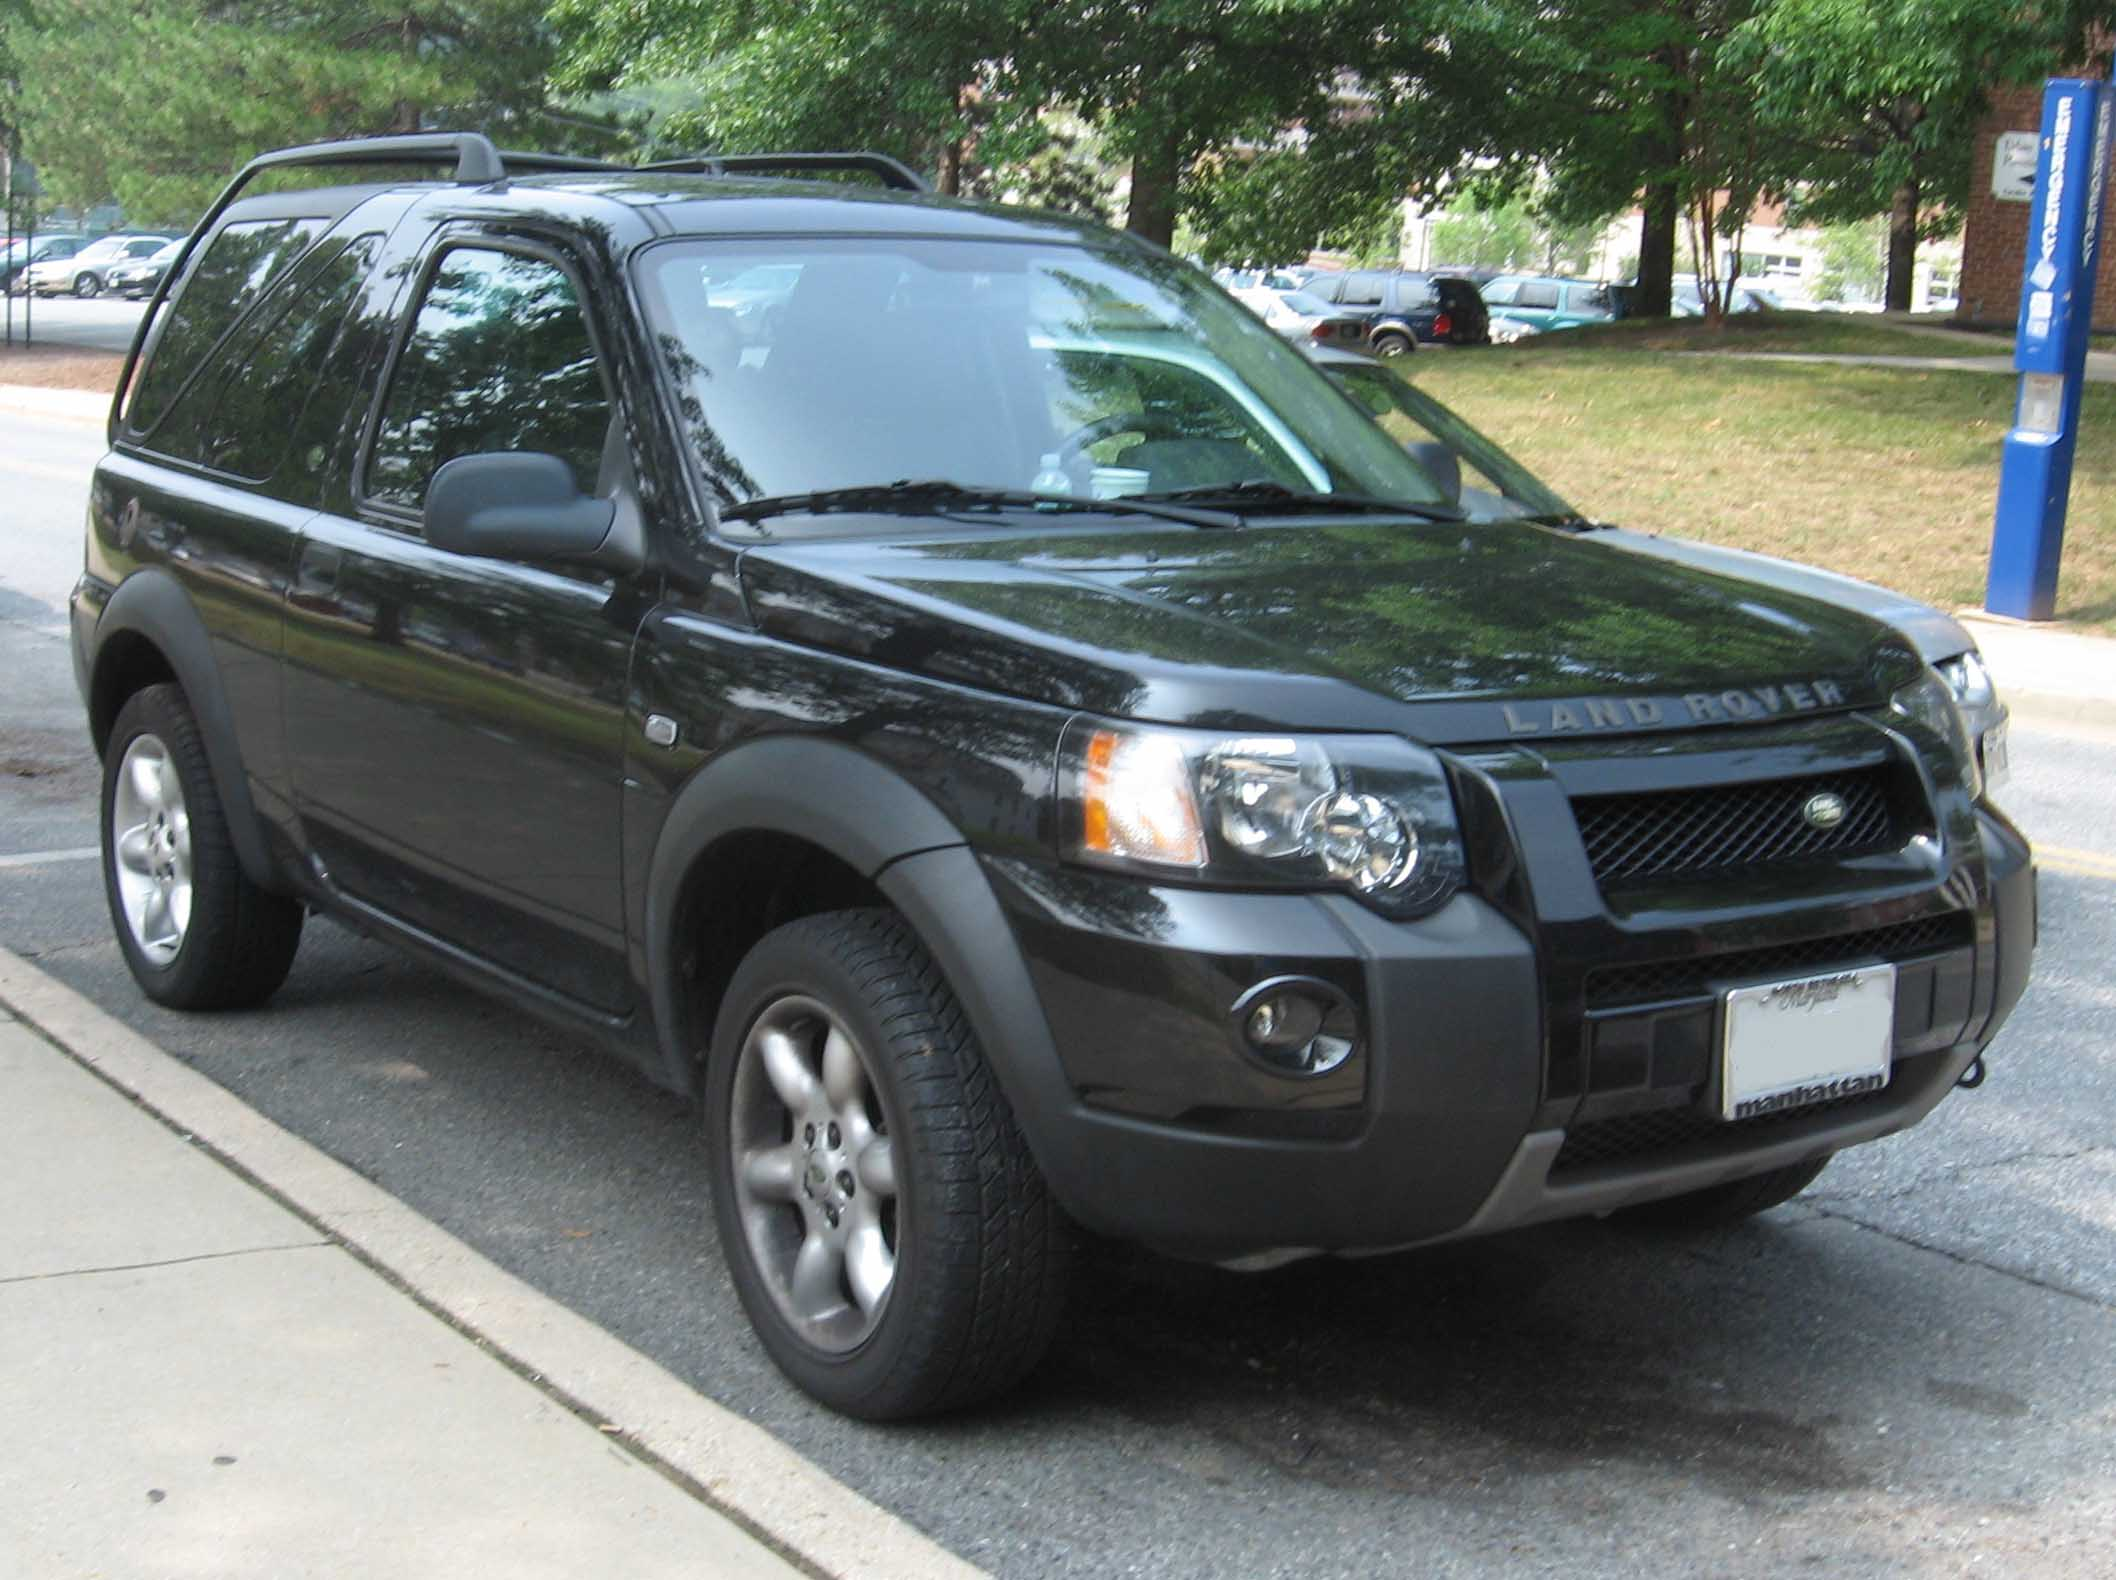 Land Rover Freelander 2004 Review Amazing and